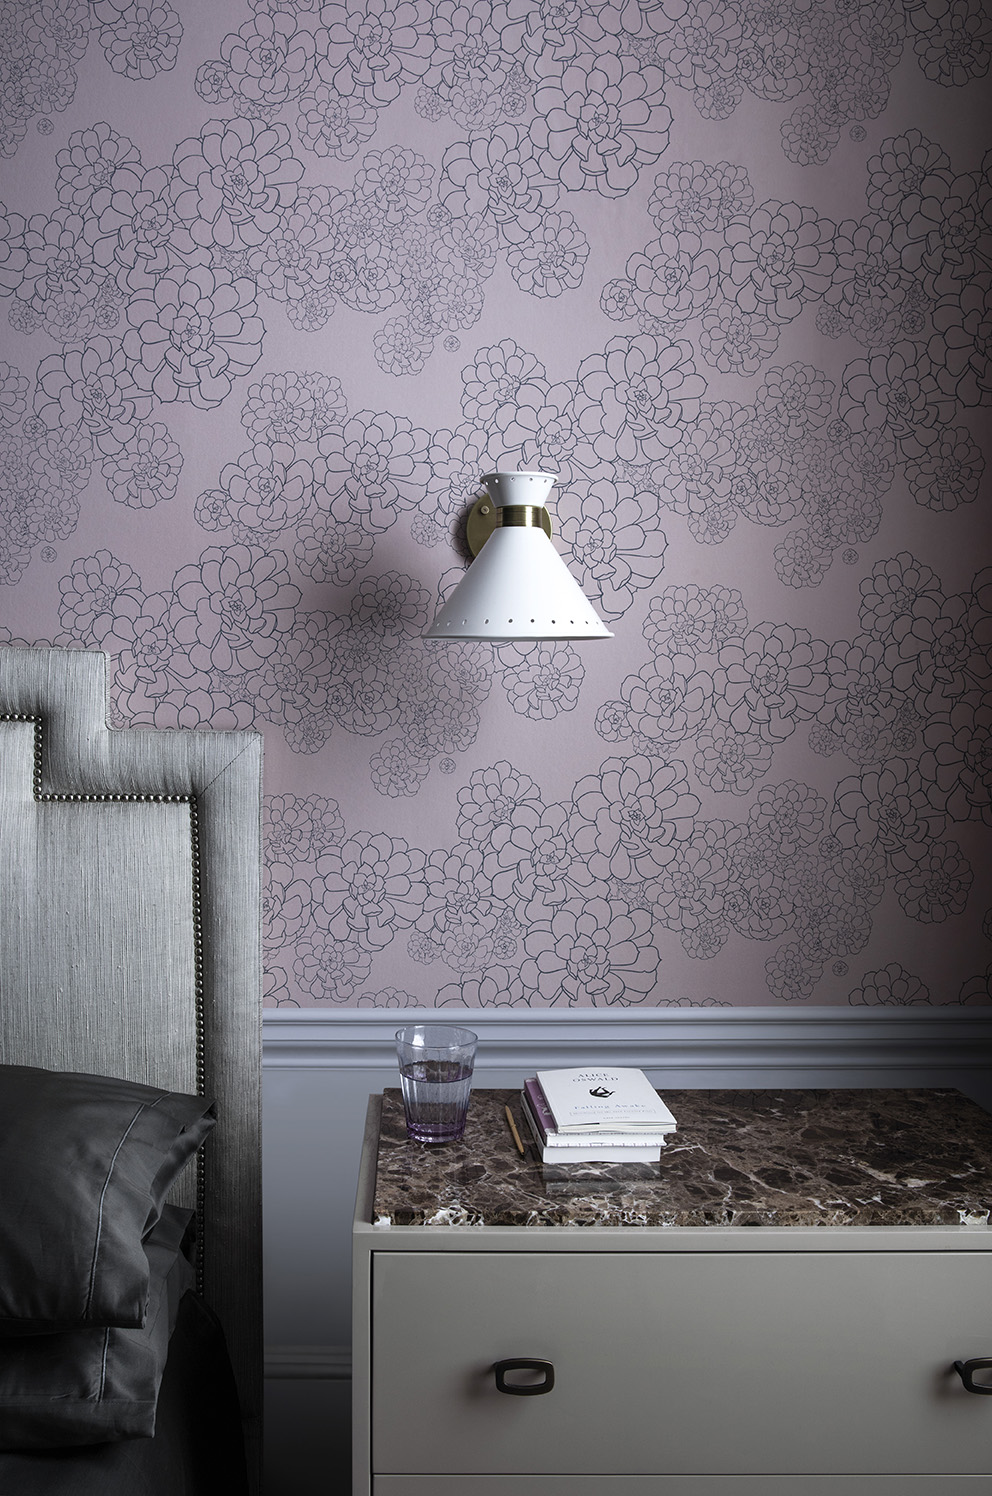 'Tresco' in collaboration with Hugo Dalton by Paint & Paper Library;Wallpaper: Aeonium- Temple (Detail);Paint: Ceiling & Cornice in Marble II 362 in Pure Flat Emulsion and Skirting & Panelling in Quail in Architects' Eggshell.